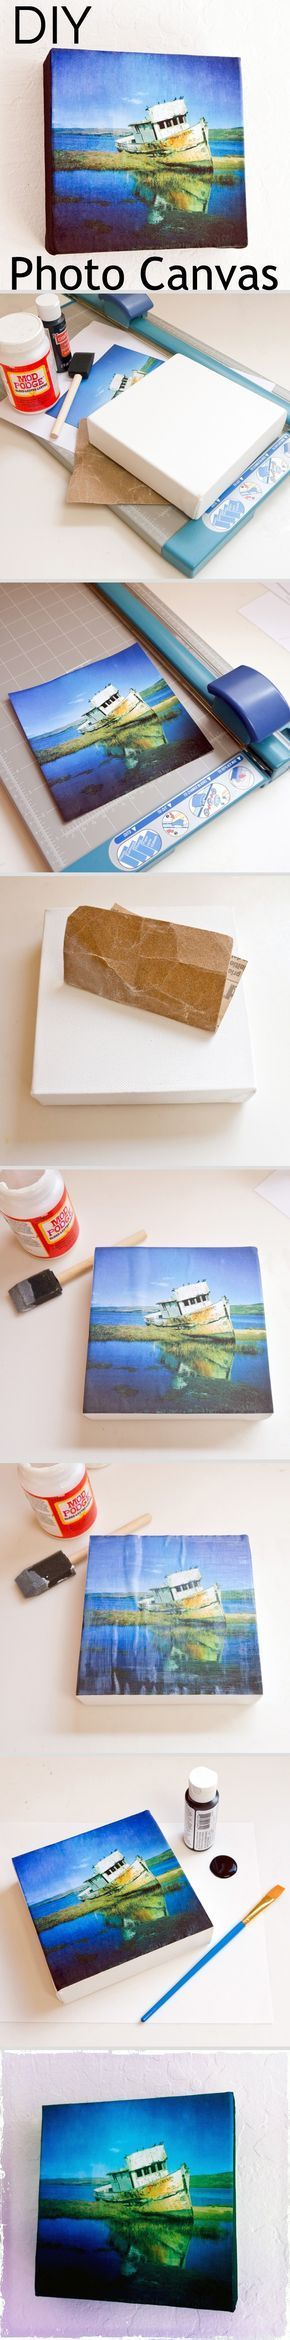 Make your own photo canvas prints to save money. photos are great for this!